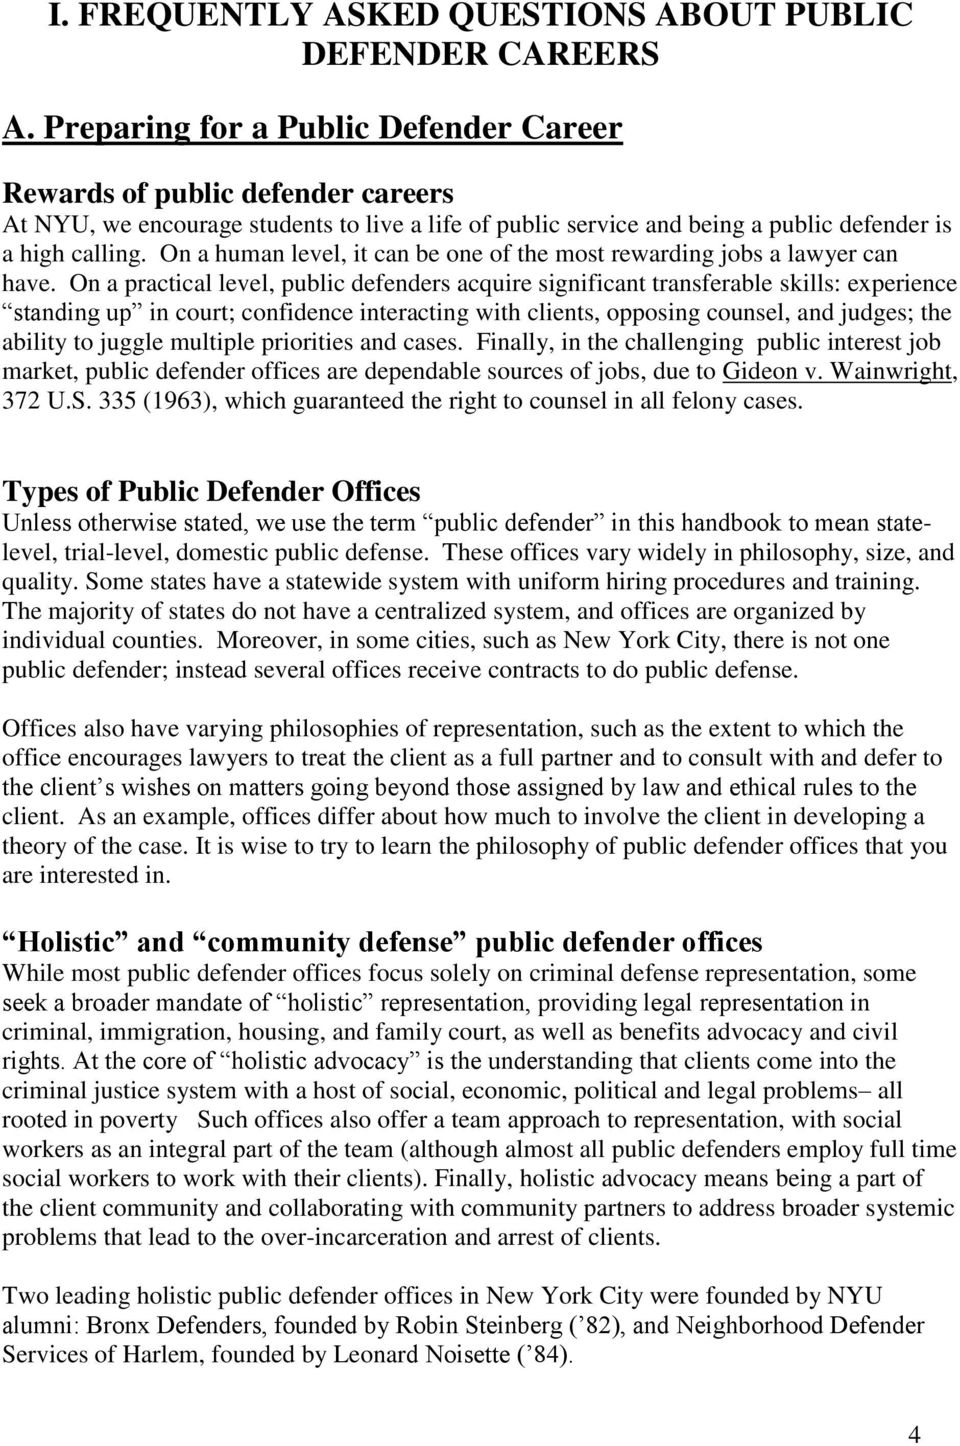 public defender handbook pdf on a human level it can be one of the most rewarding jobs a lawyer